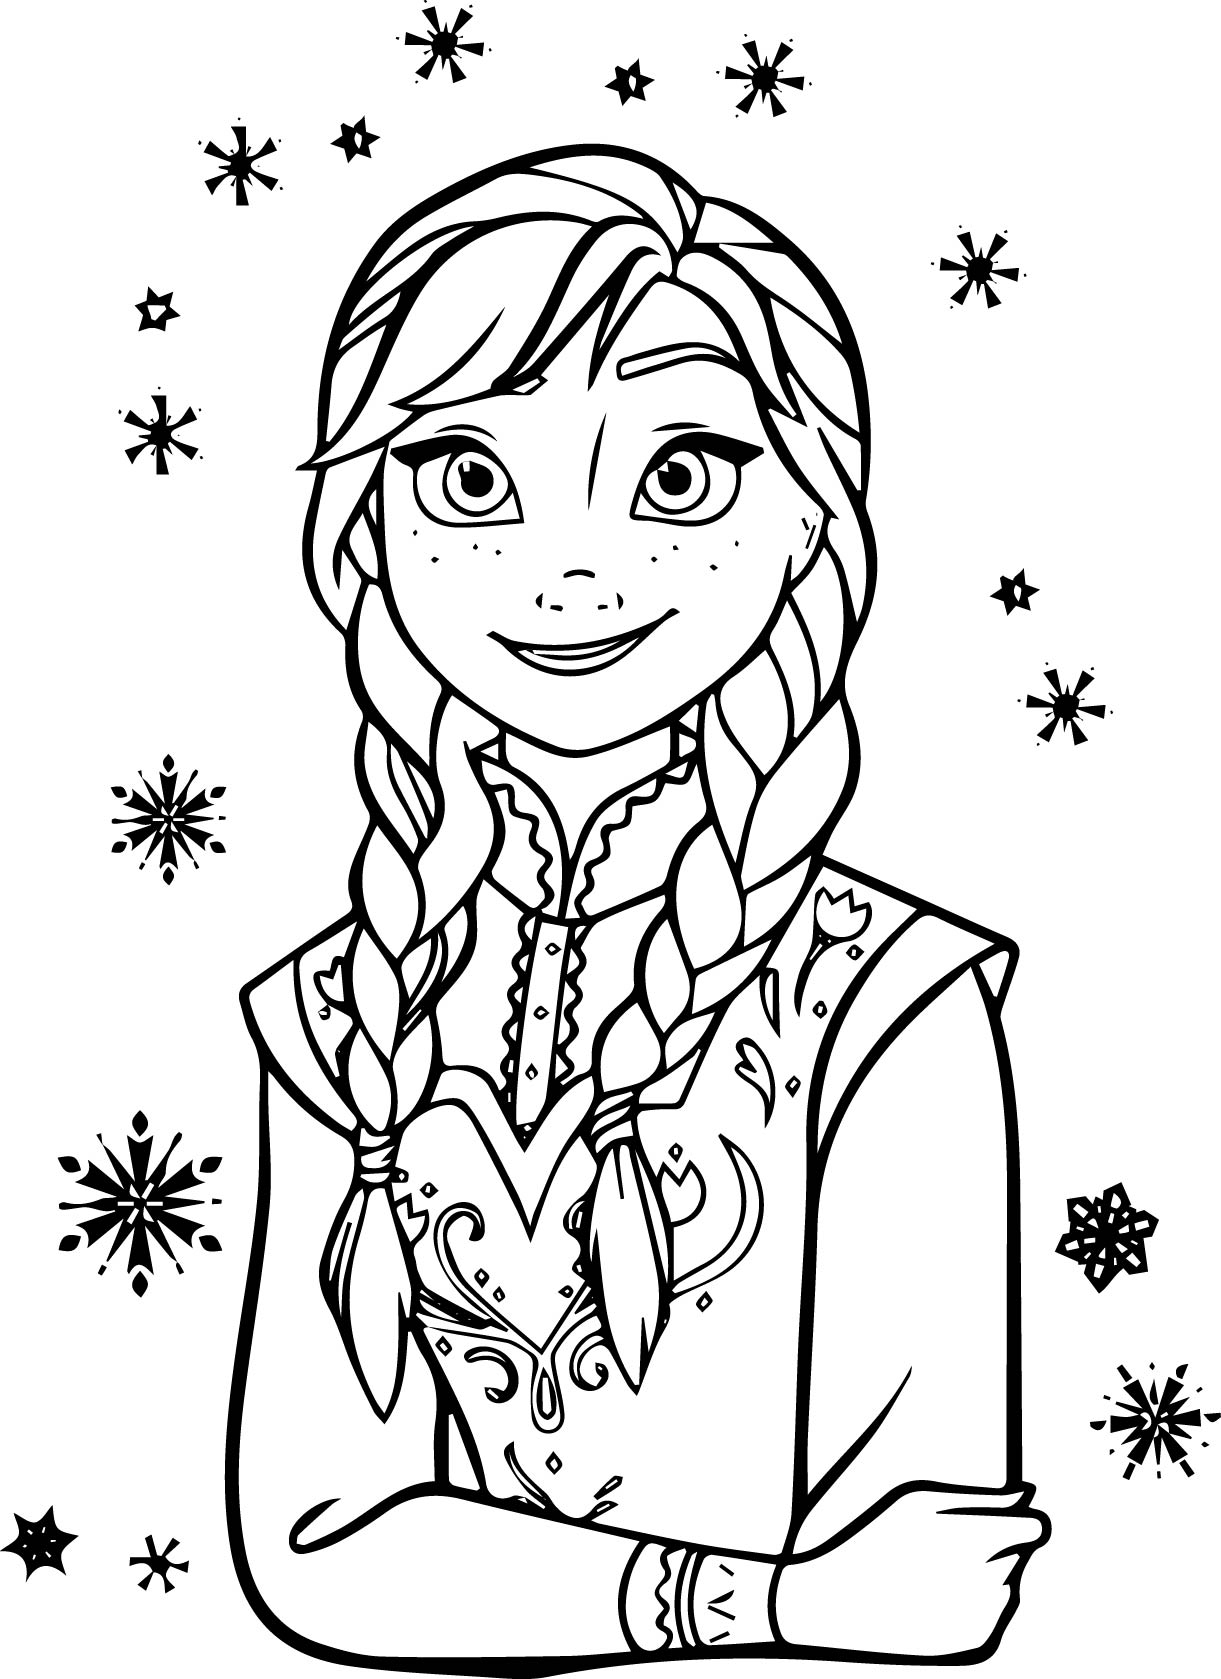 frozen coloring books frozen coloring pages free printables at getdrawings books frozen coloring